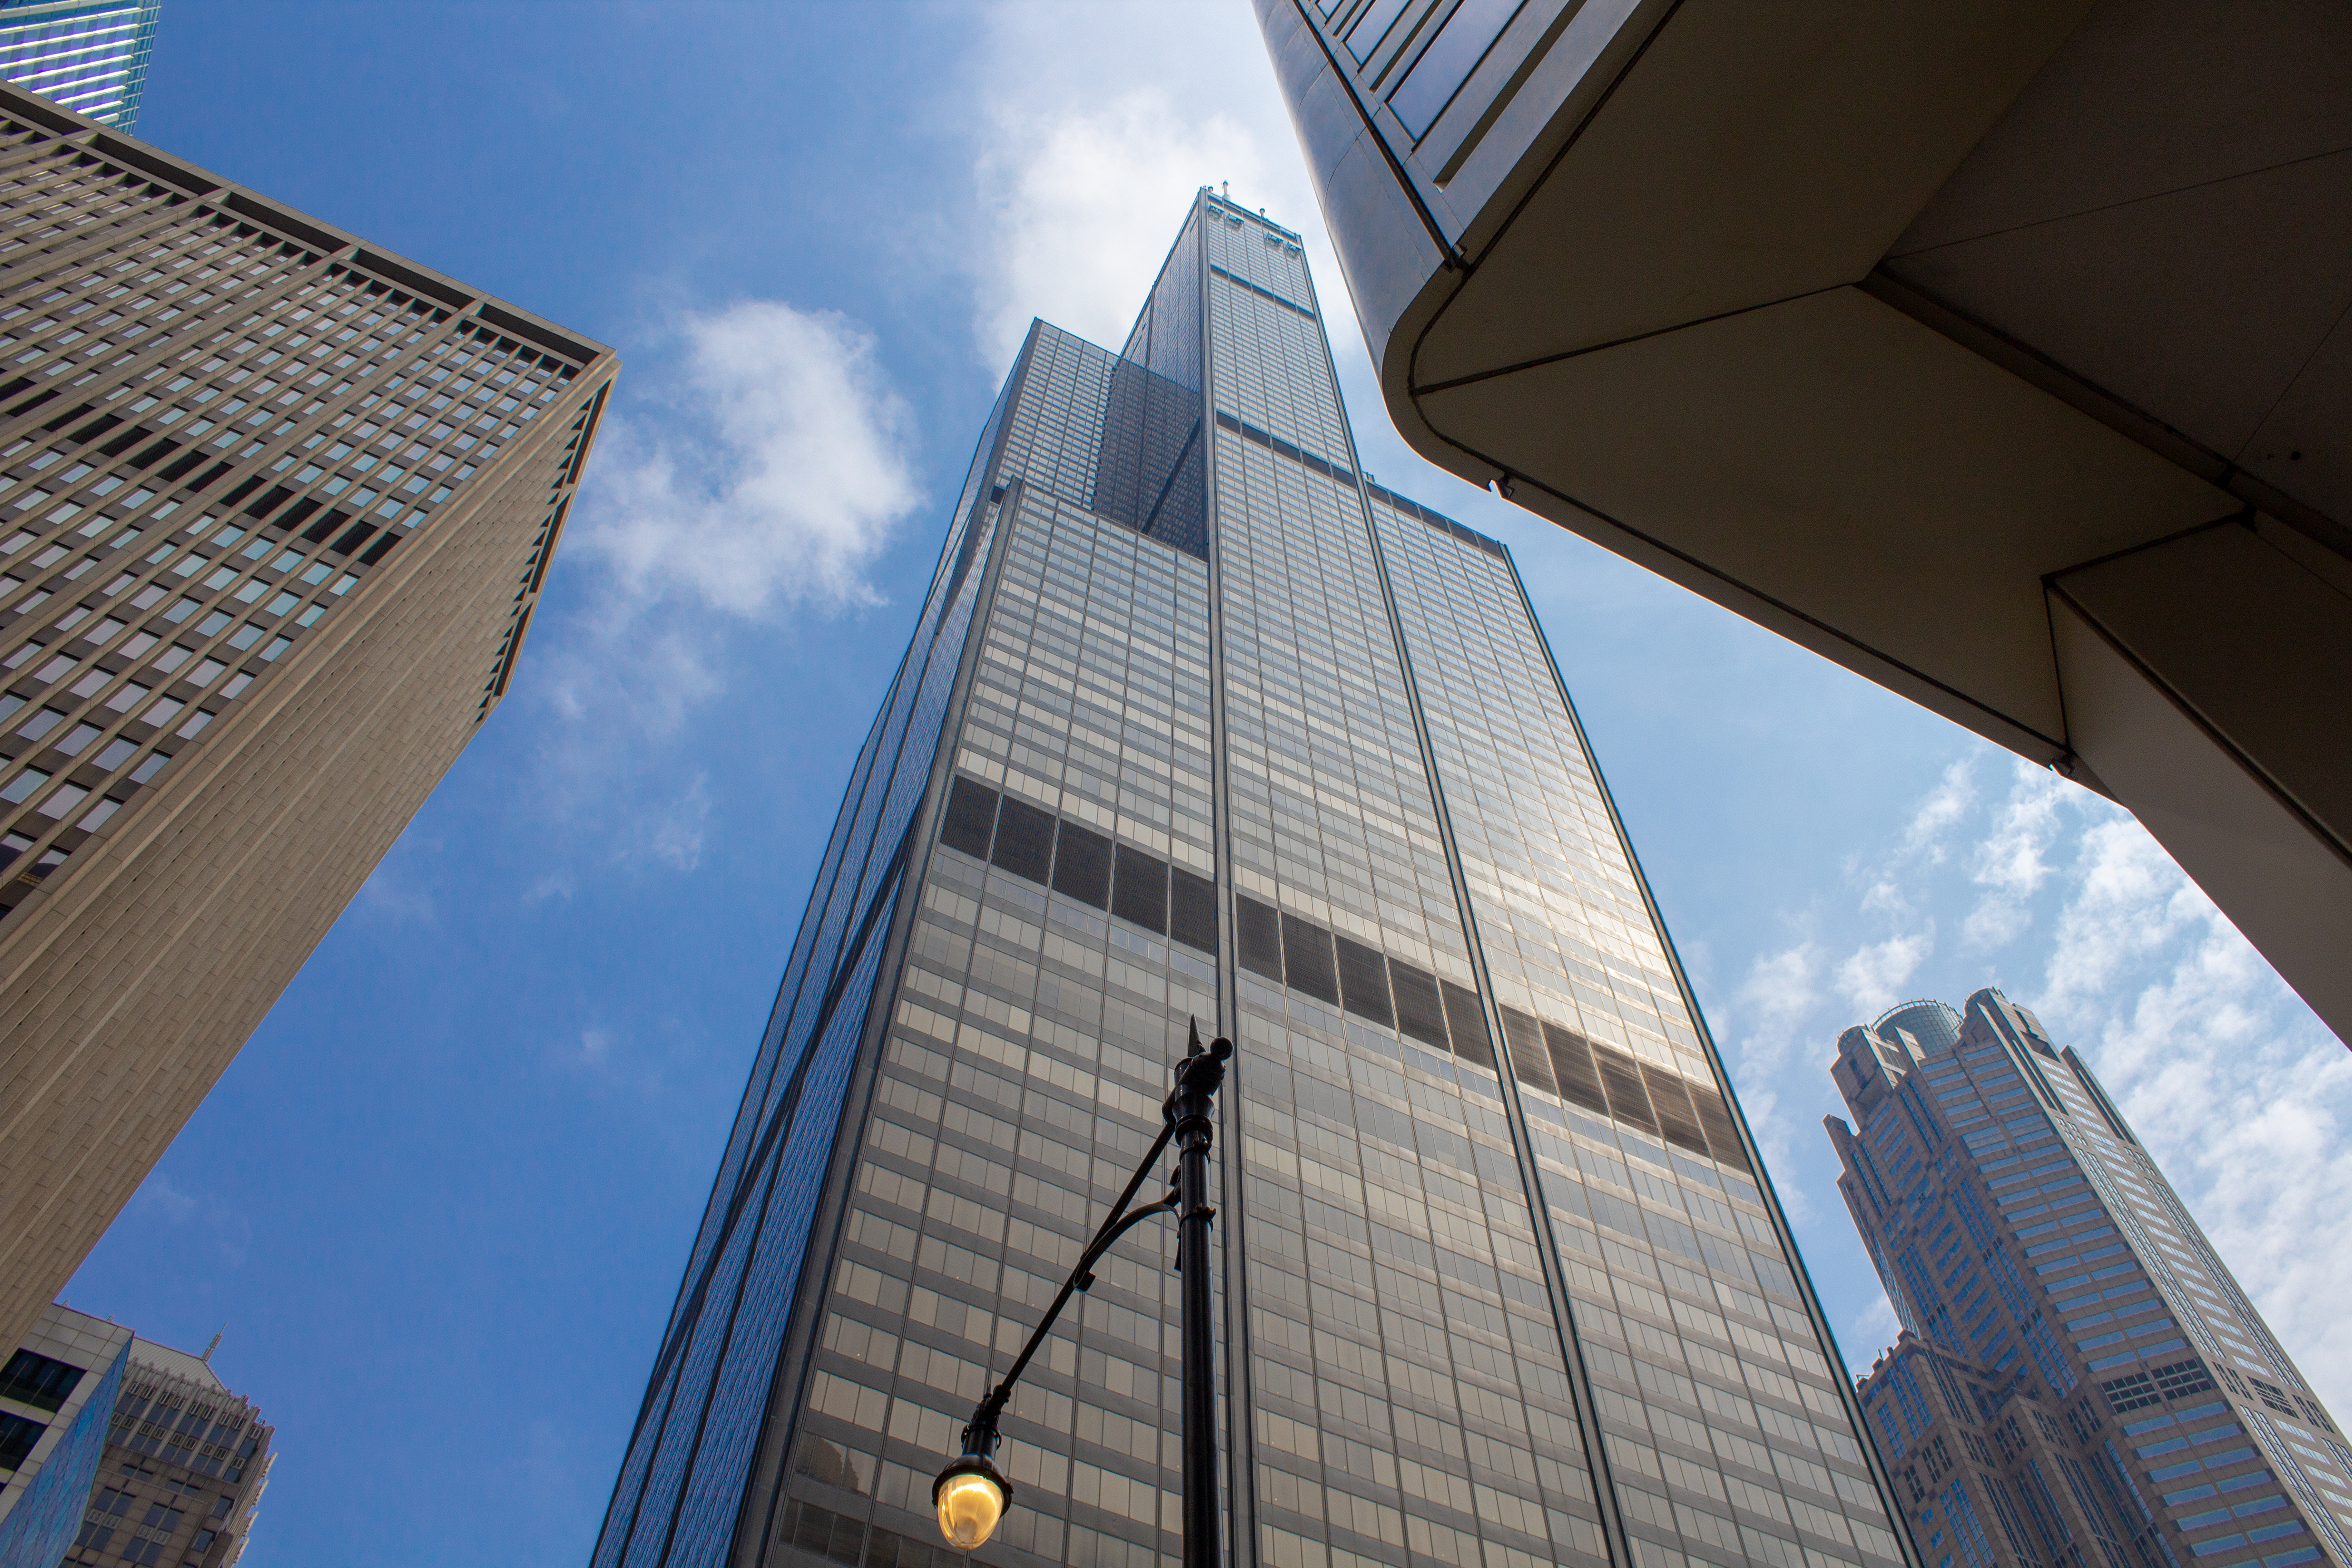 Willis Tower loses claim to highest roof in the Western Hemisphere to NY skyscraper